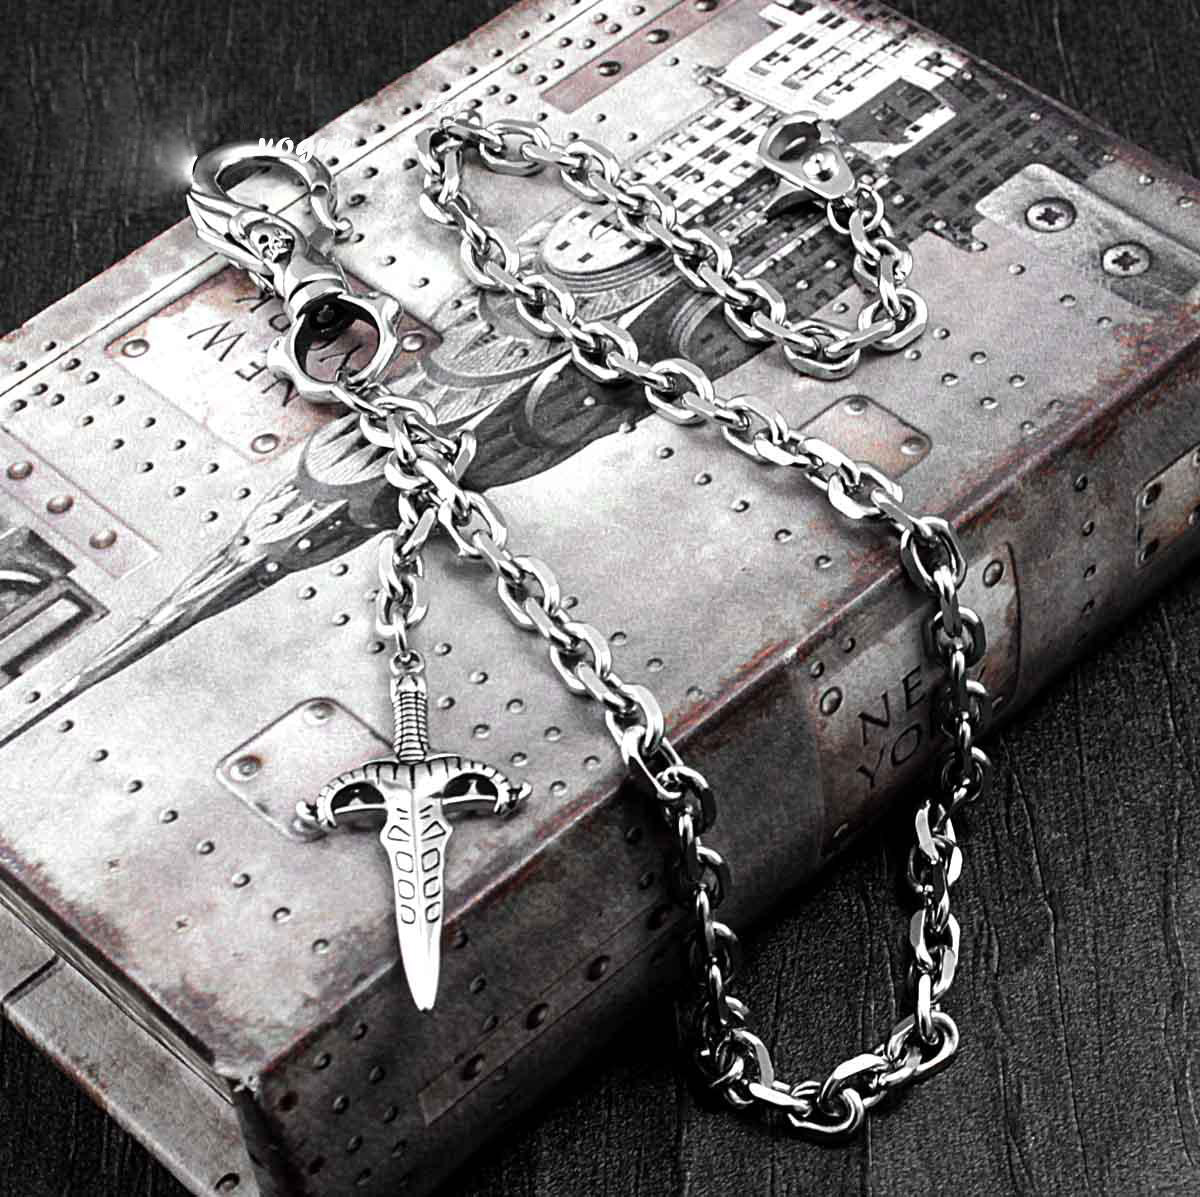 Solid Stainless Steel Skull Sword Wallet Chain Cool Punk Rock Biker Trucker Wallet Chain Trucker Wallet Chain for Men